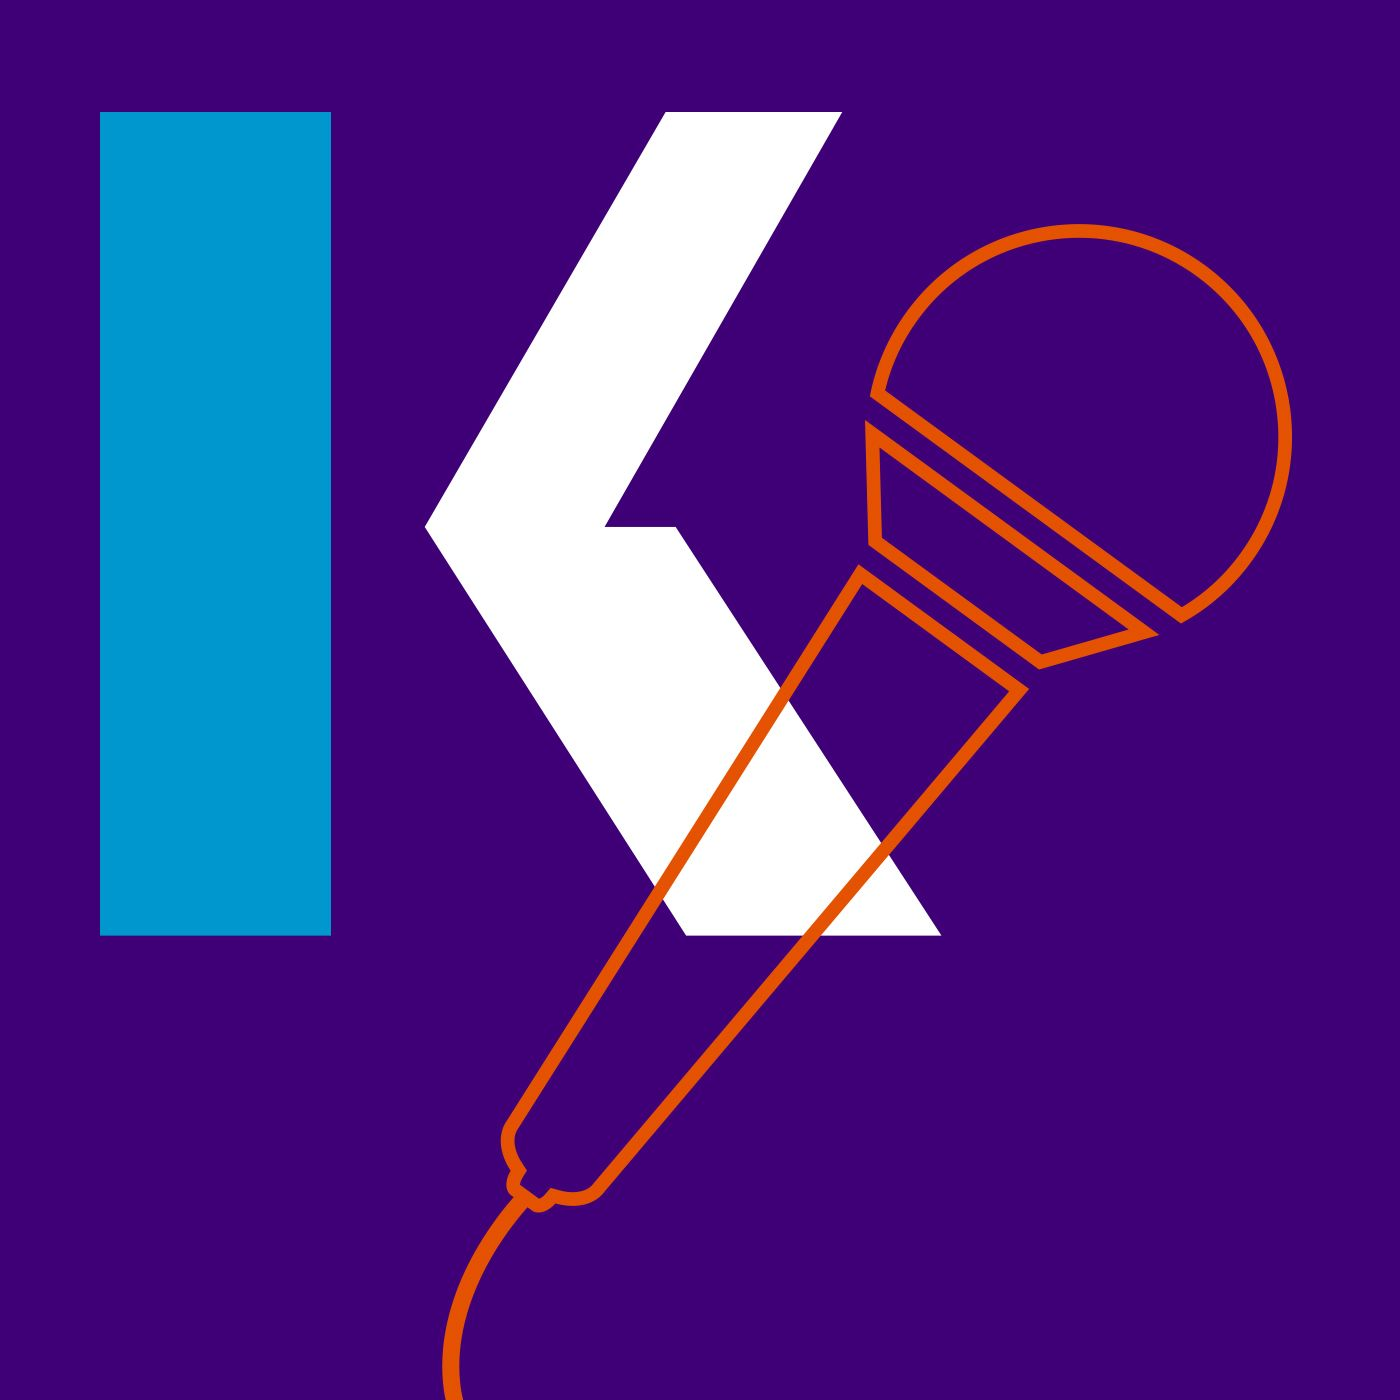 Kaplan's NCLEX Prepcast - Episode 24 - Resume Writing and Interview Tips for Nurses